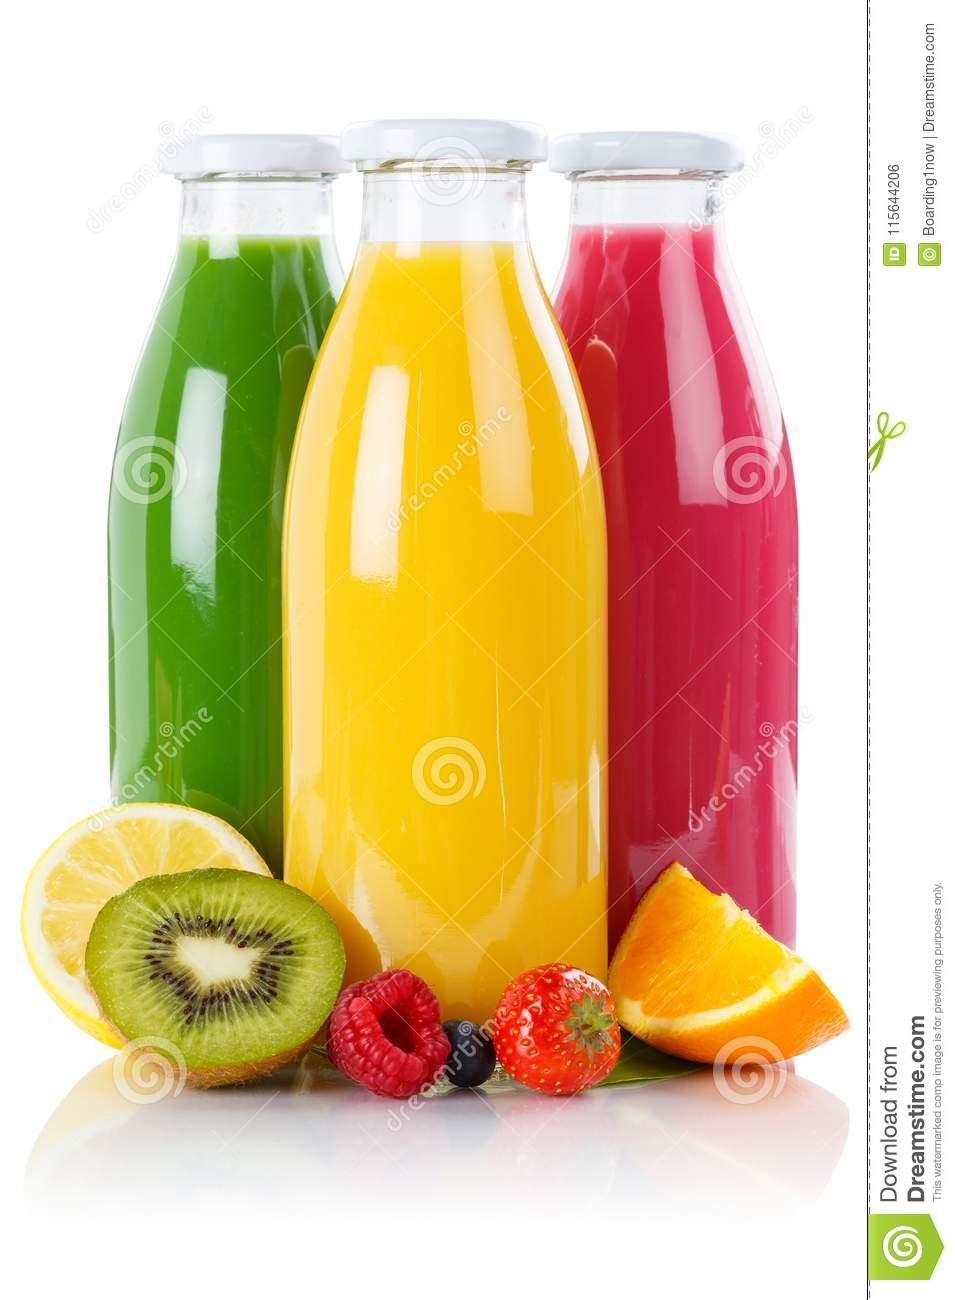 Fruit juice smoothie fruits smoothies in bottle vertical isolate